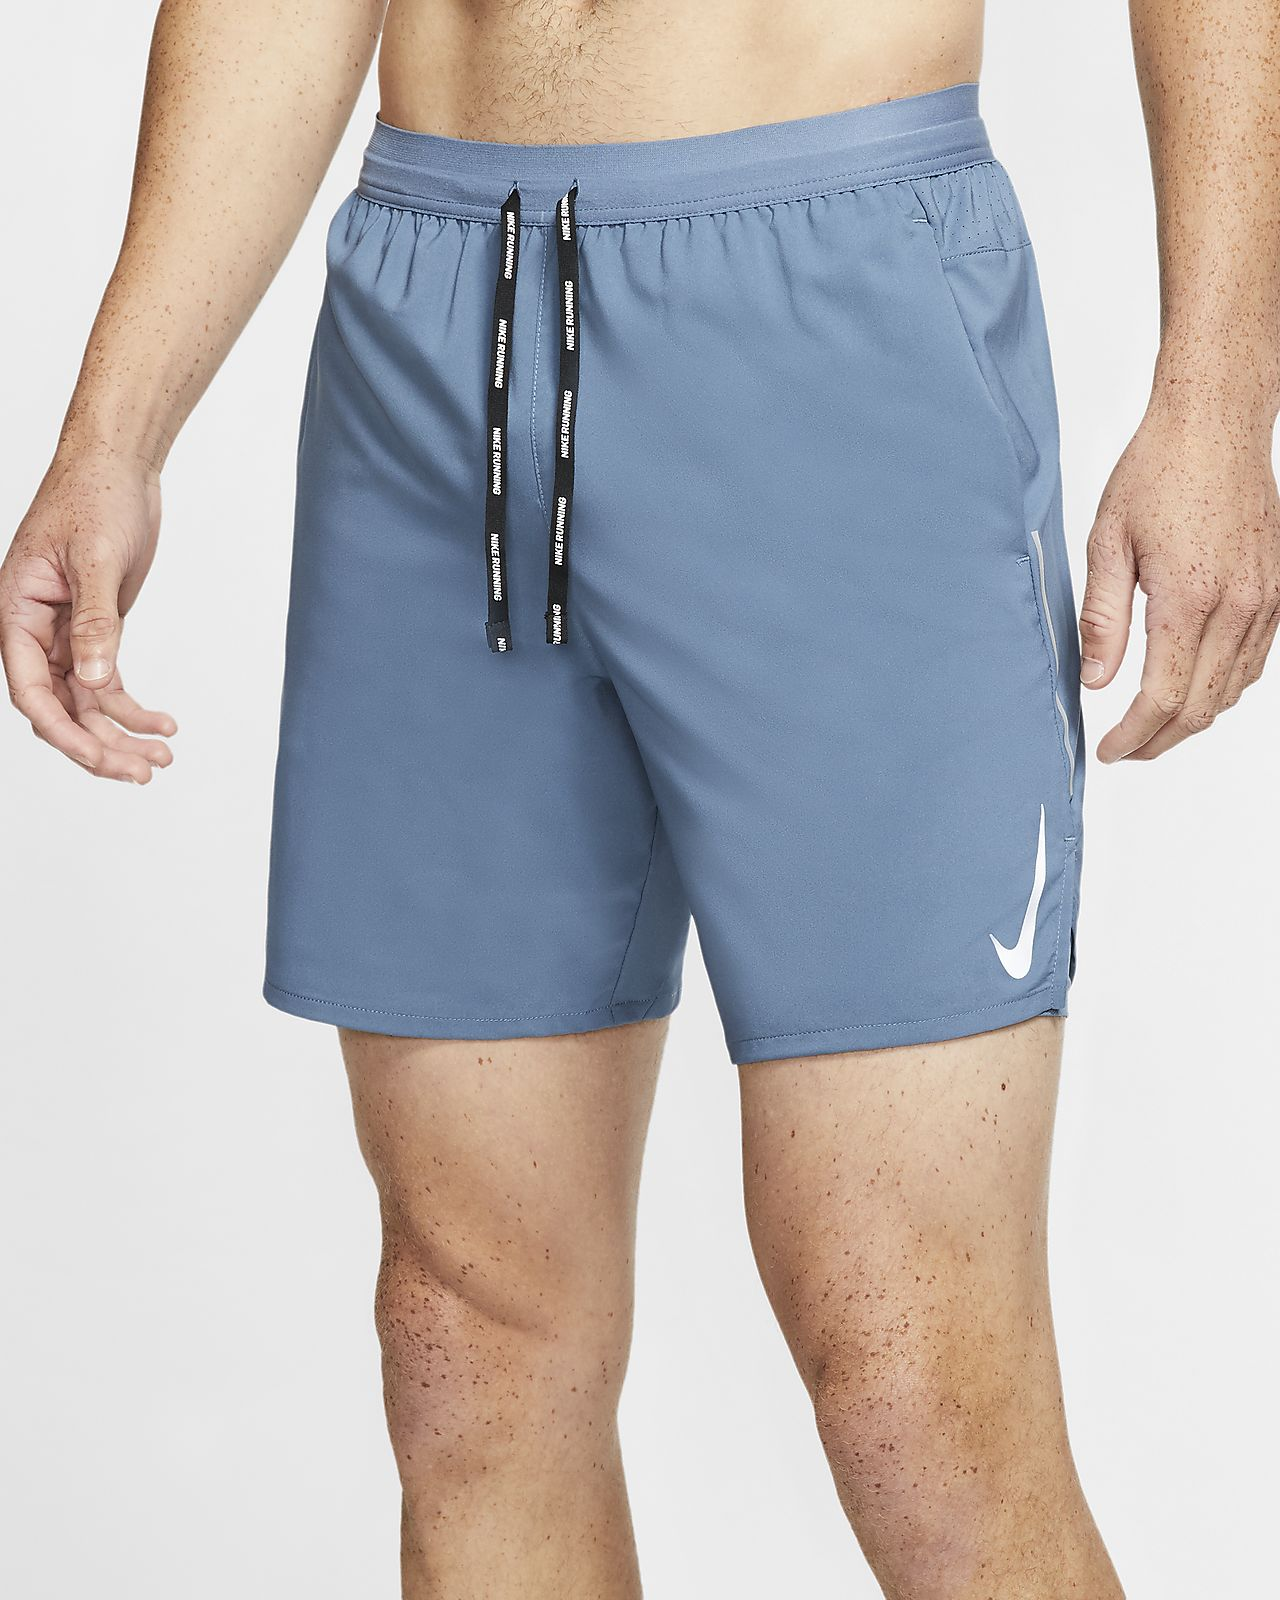 Nike Dri FIT Flex Stride Men's 18cm (approx.) 2 in 1 Running Shorts